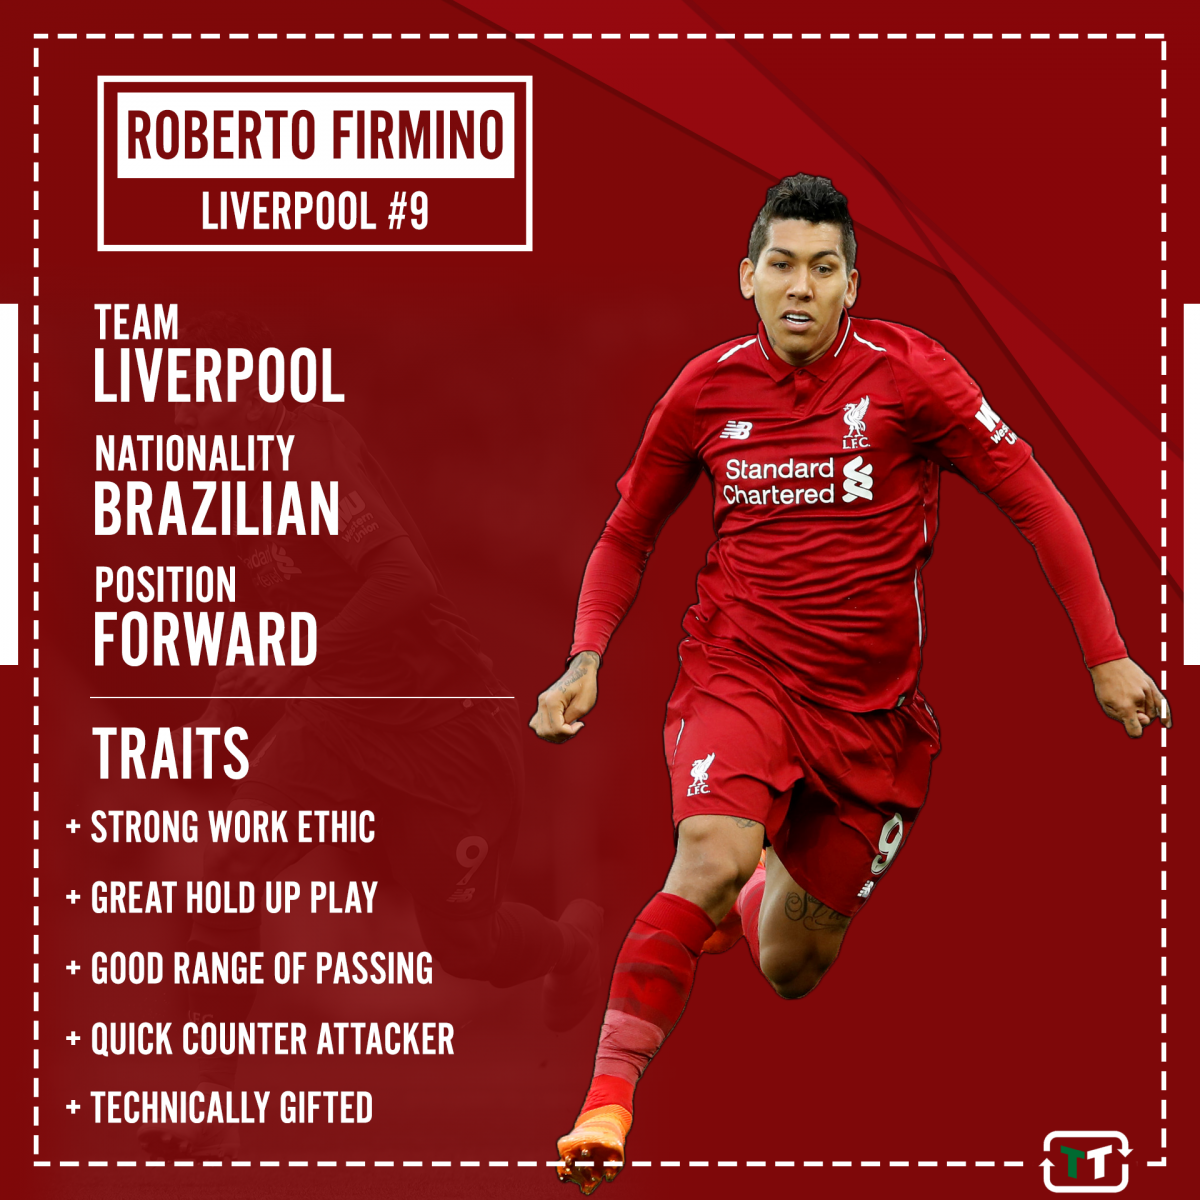 Liverpool fans rave over fantastic Firmino picture from Arsenal thumping